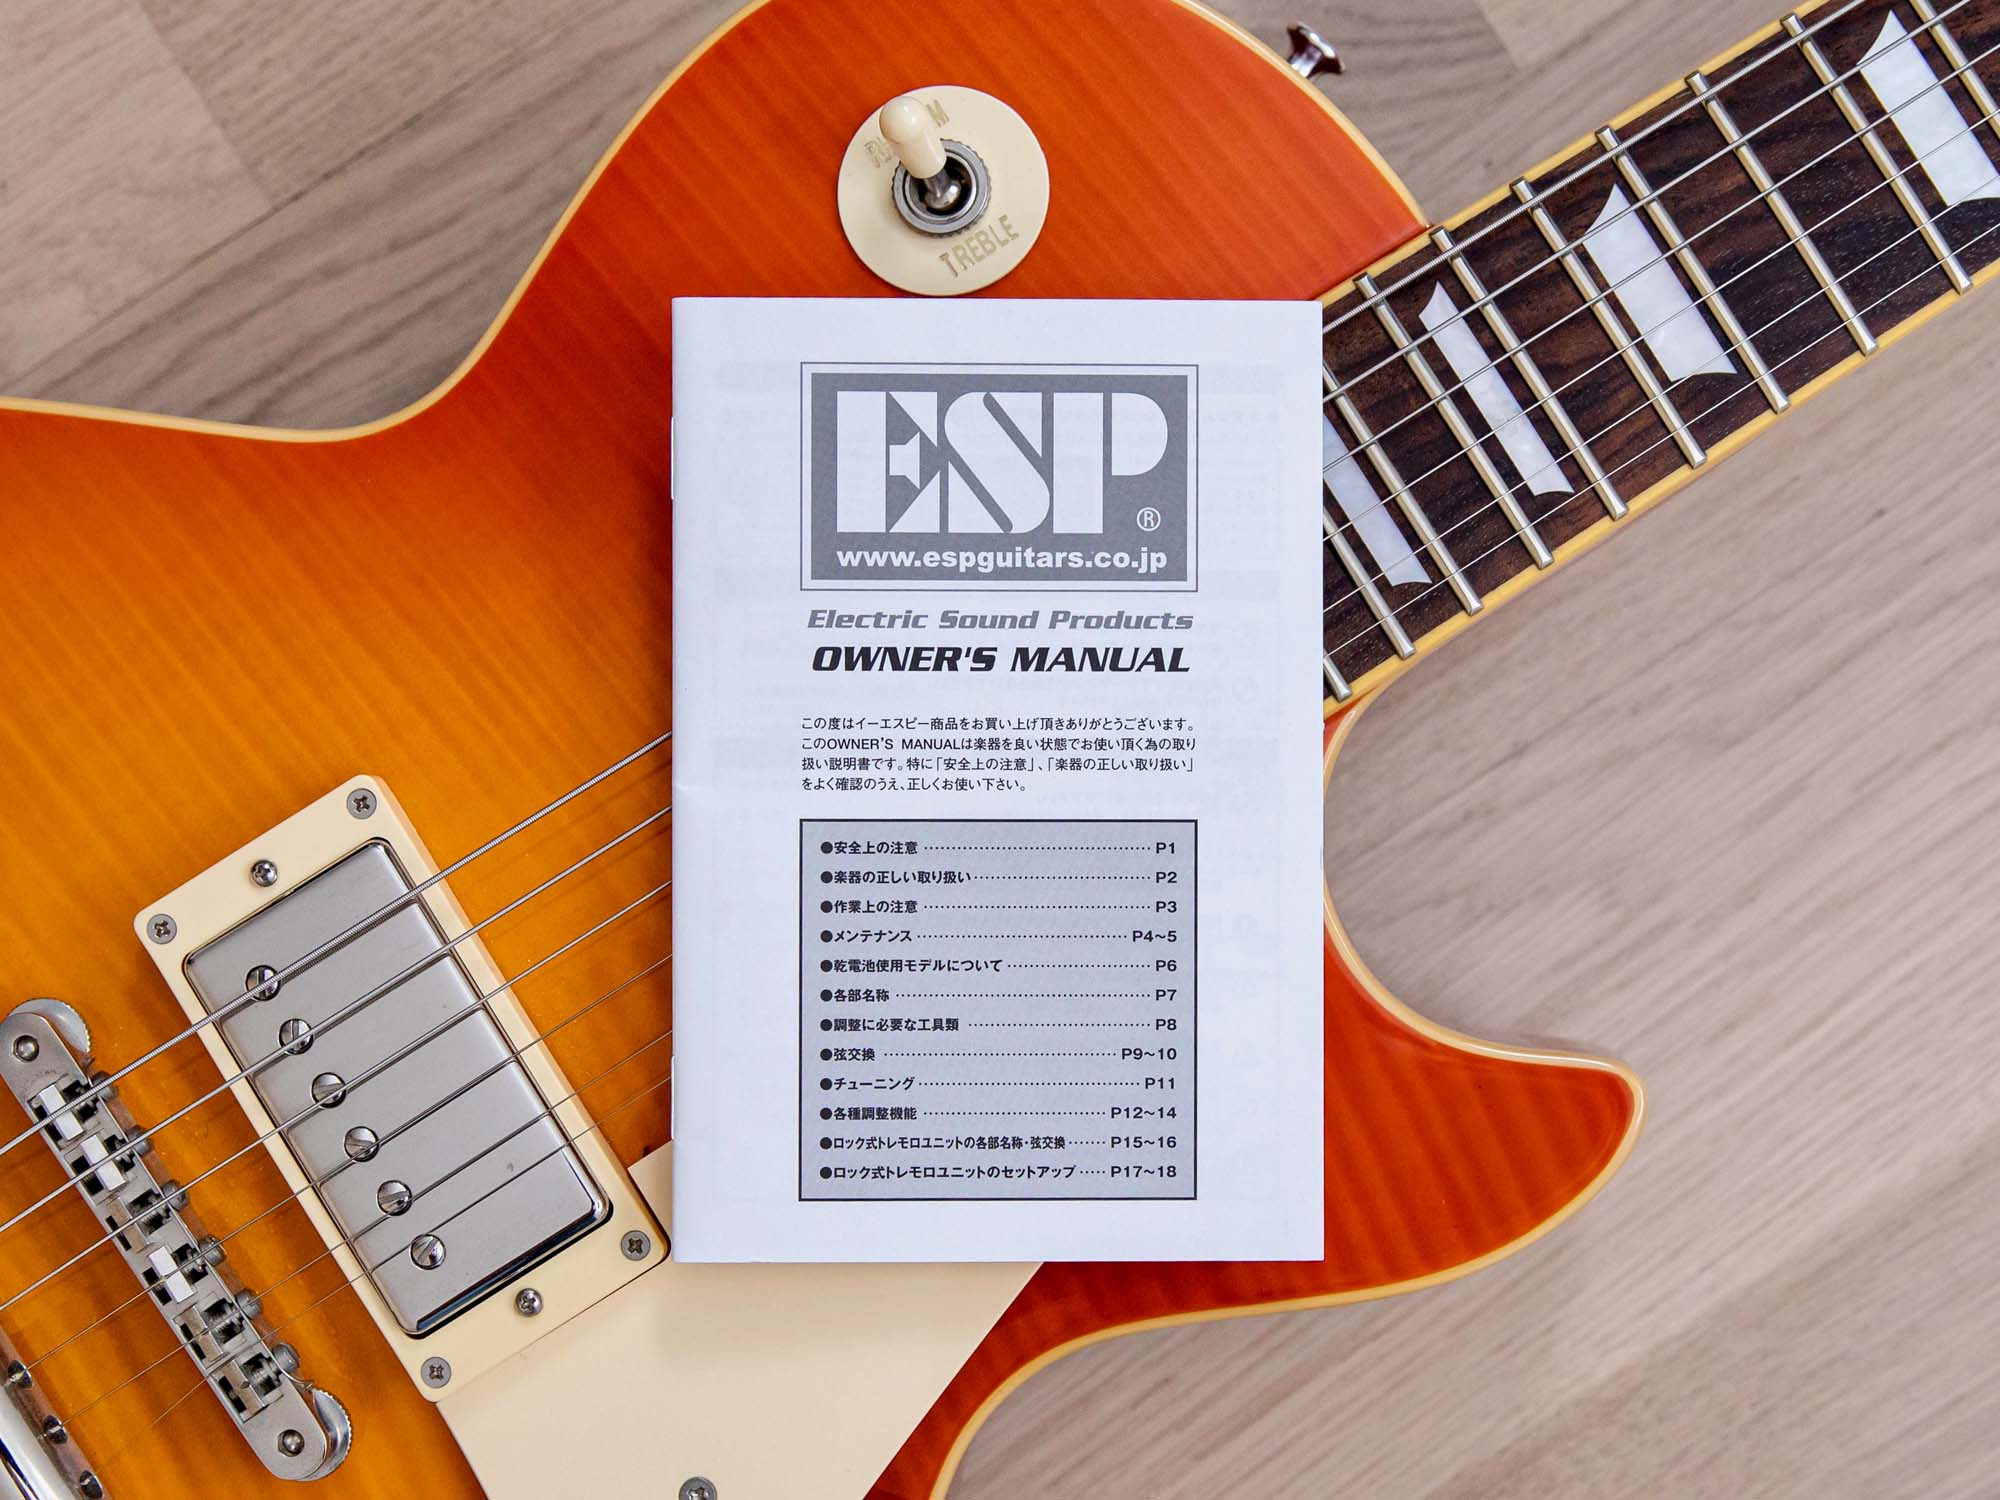 2014 Edwards by ESP Limited Model E-LP-100SD Flame Top w/ USA Seymour Duncan Pickups, Japan